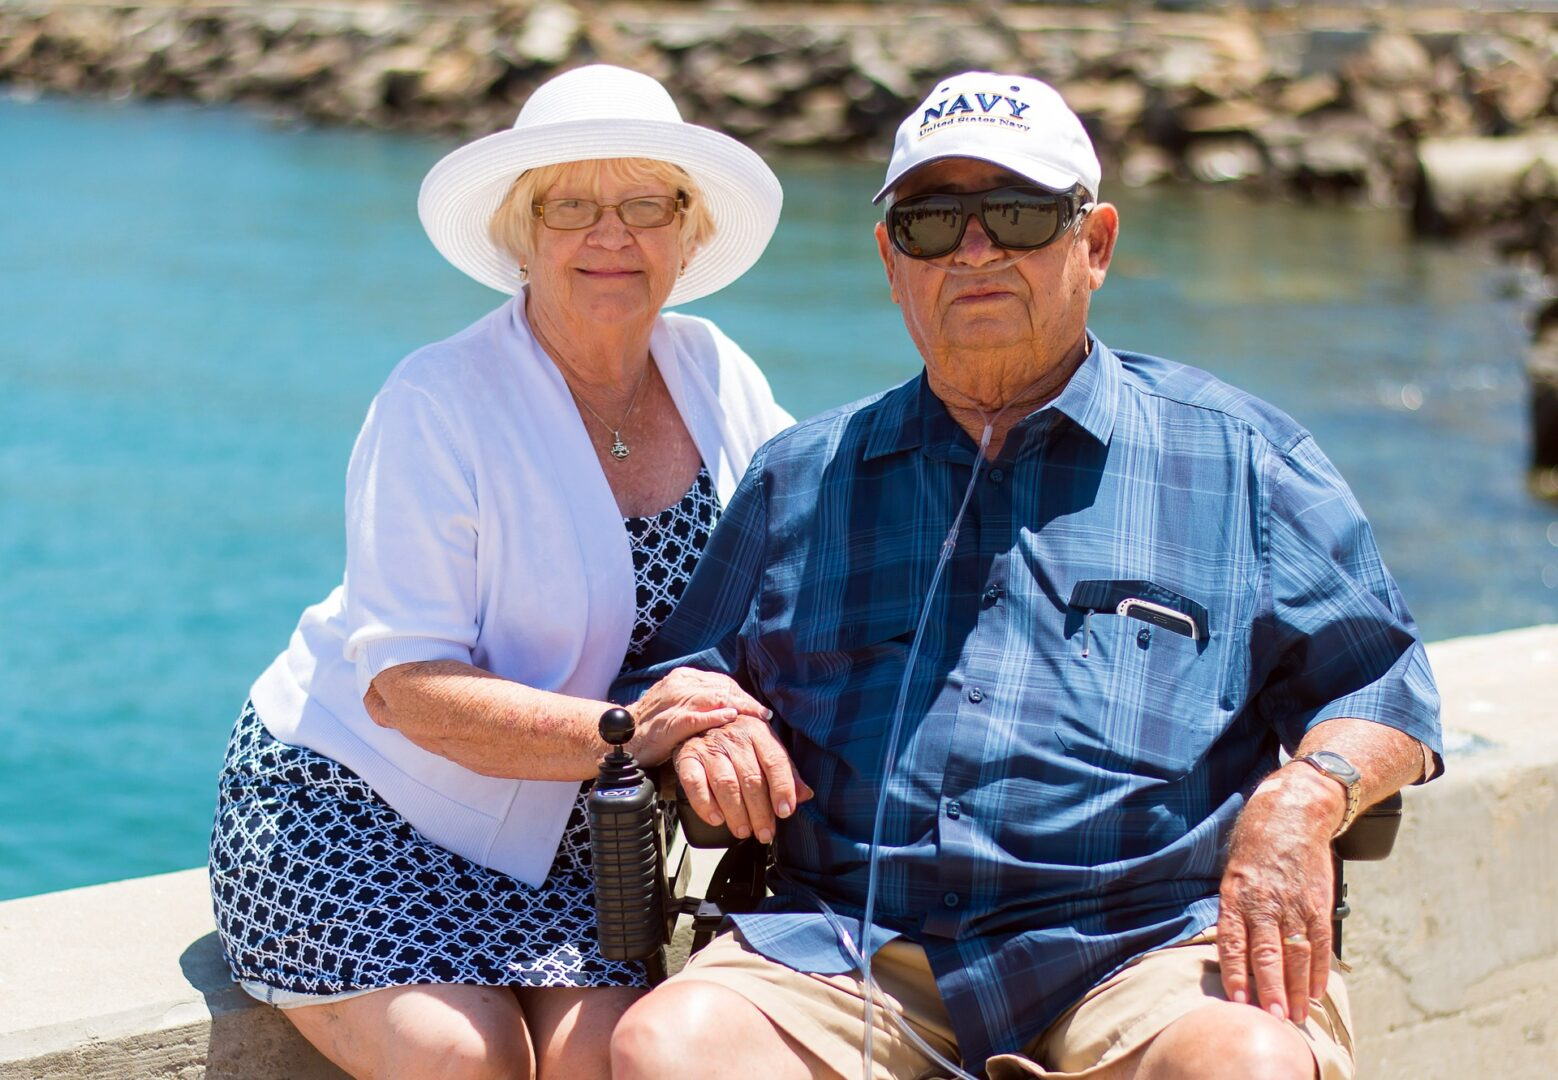 older couple sitting by the water.  Man has an oxygen cannula in his nose and a NAVY cap and is sitting in a wheel chair.